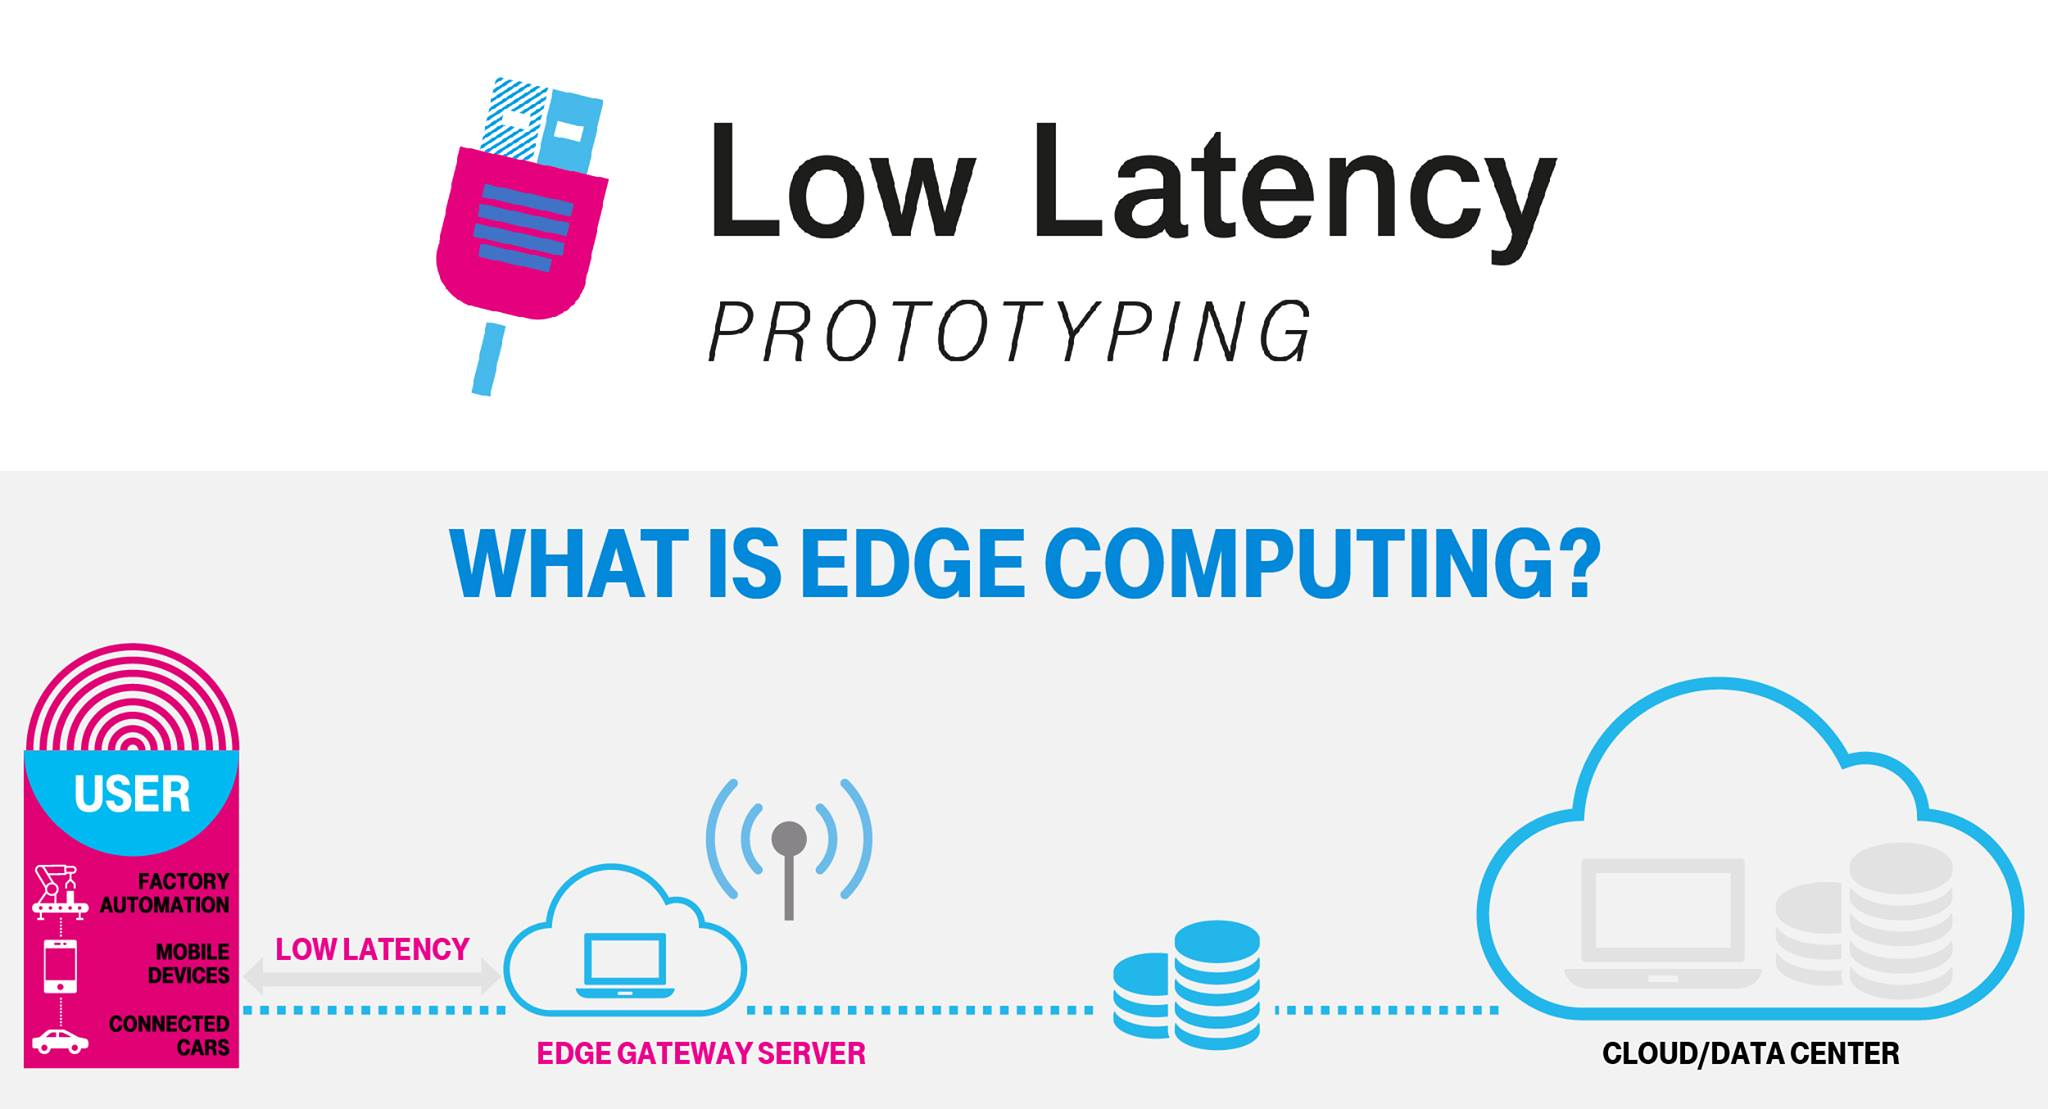 , Apply For Hub:raum Low Latency Prototyping Program: Edge Computing and 5G Technology